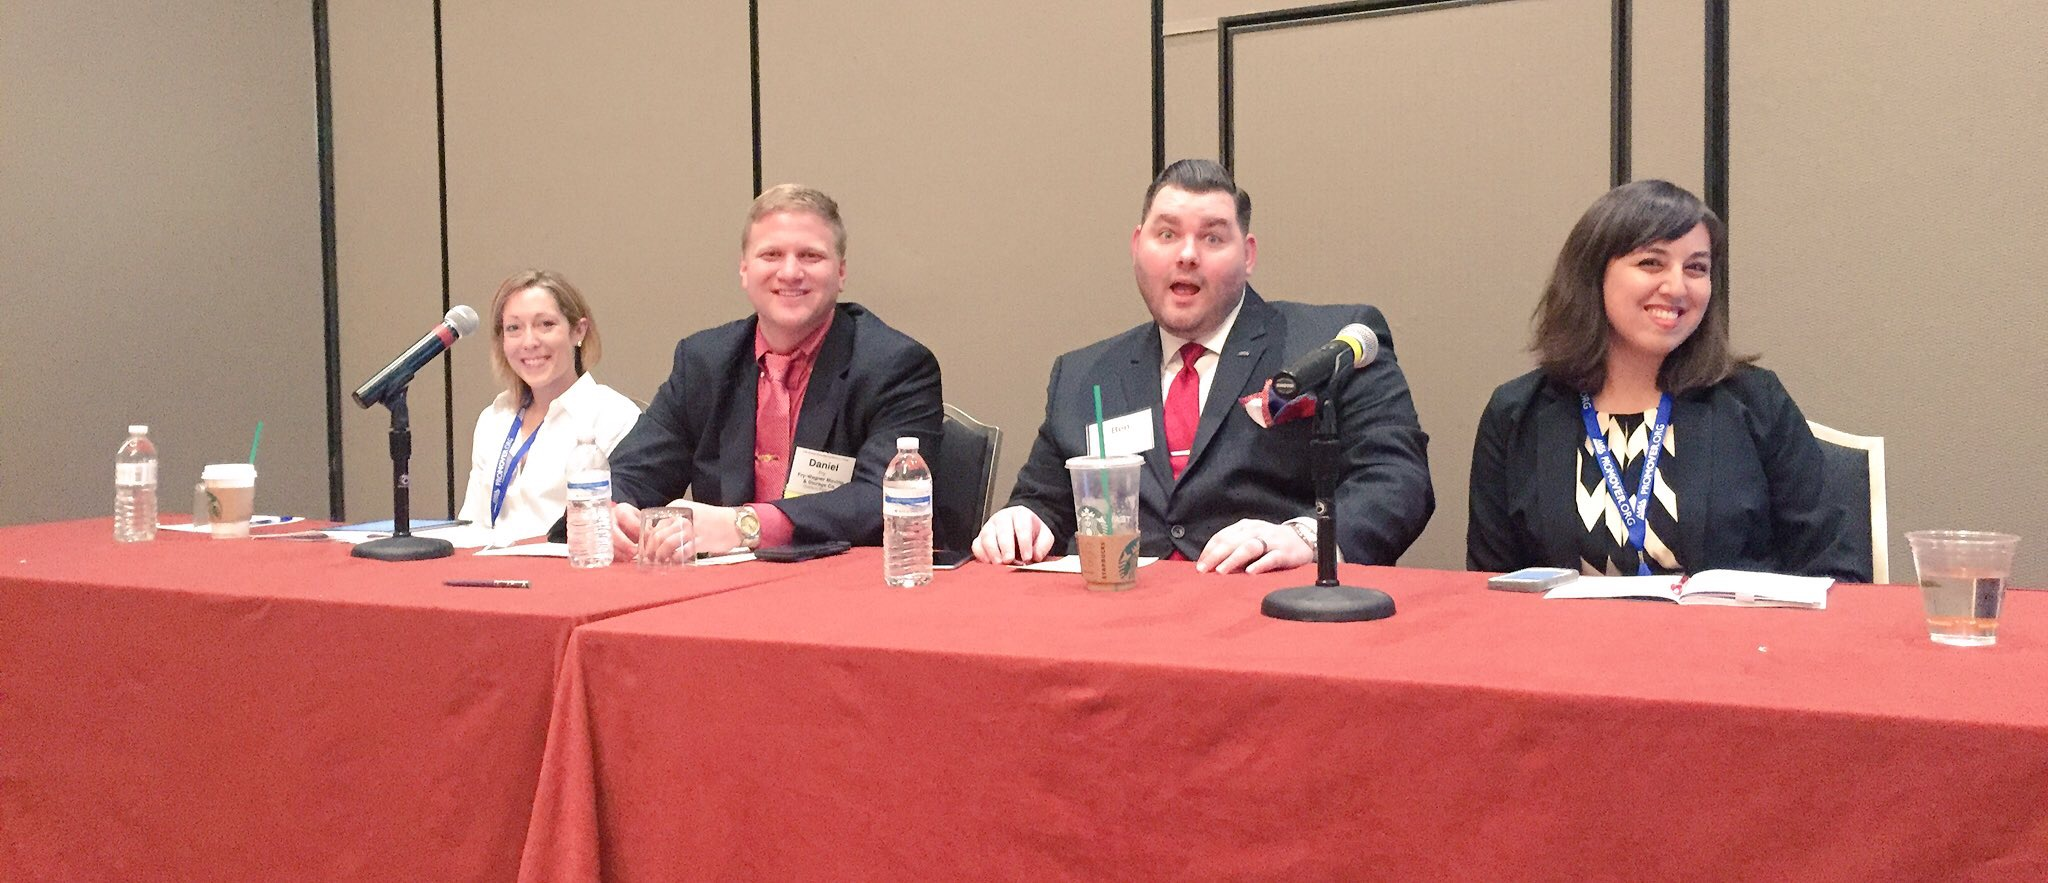 """Our (expert) friends on AMSA education panel, """"Make Lifelong Customers by Marketing to Millennials Now"""""""